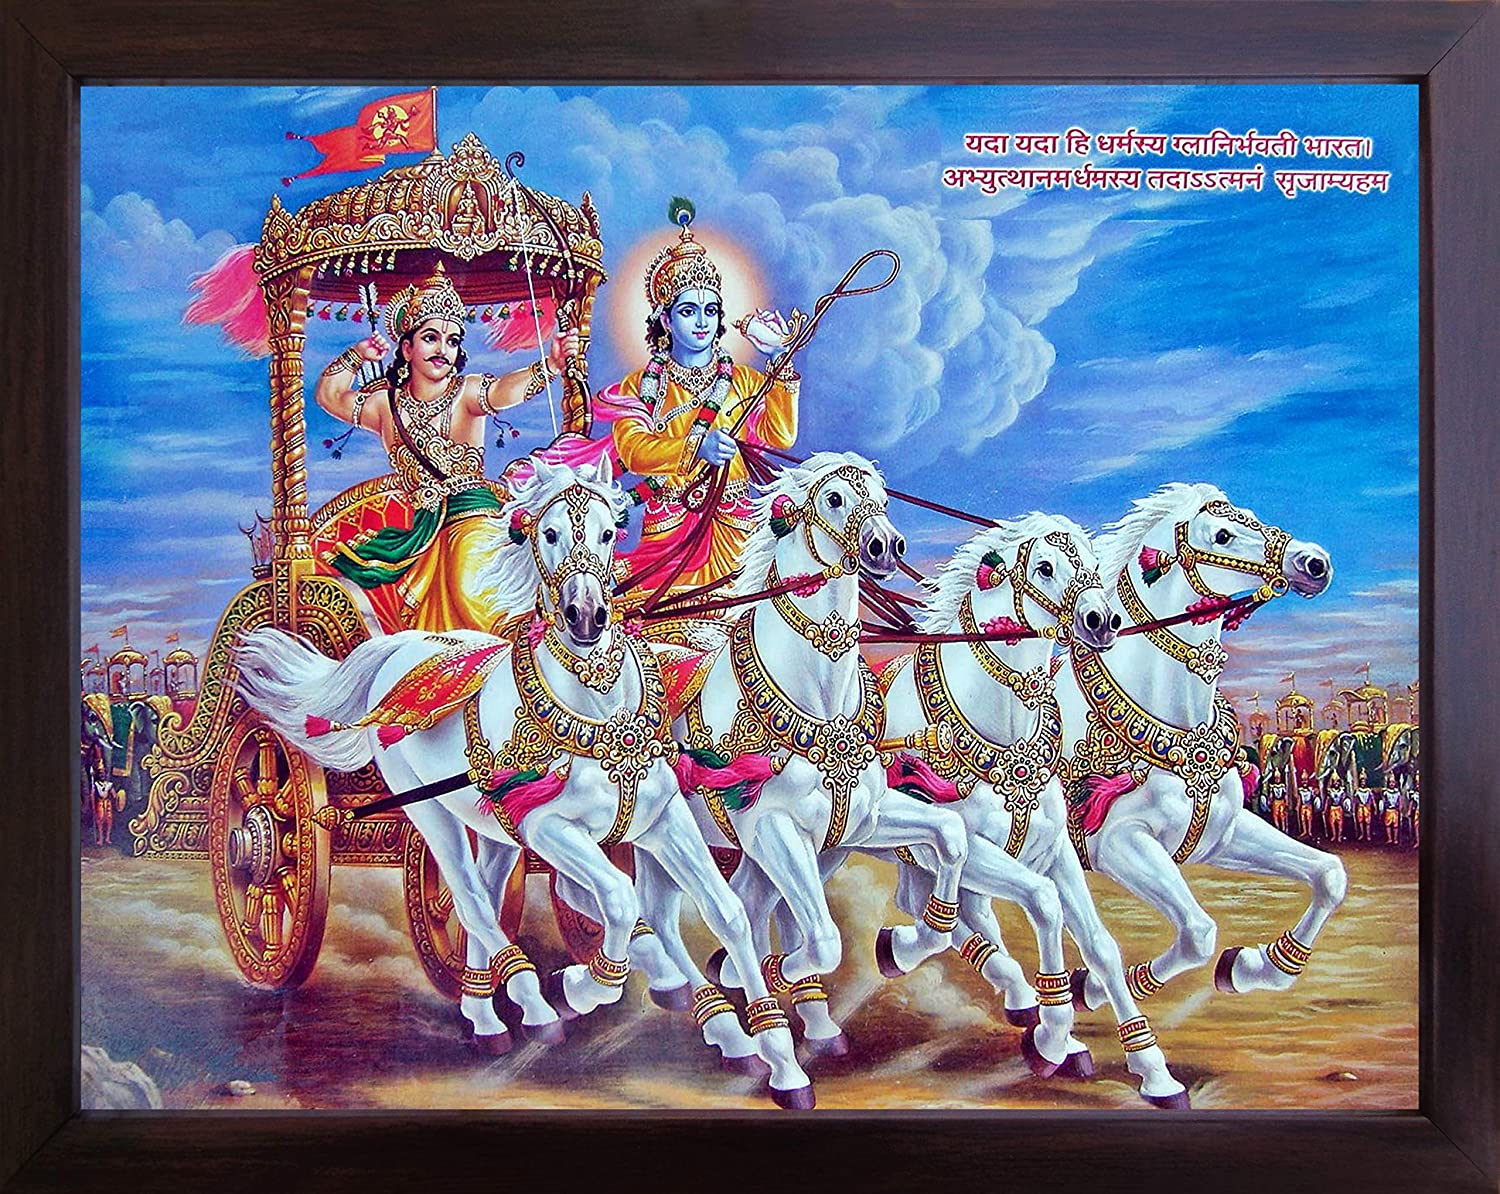 Handicraft Store Lord Krishna and Arjuna on Chariot During Mahabharata war, A Poster Frame for Home Decor